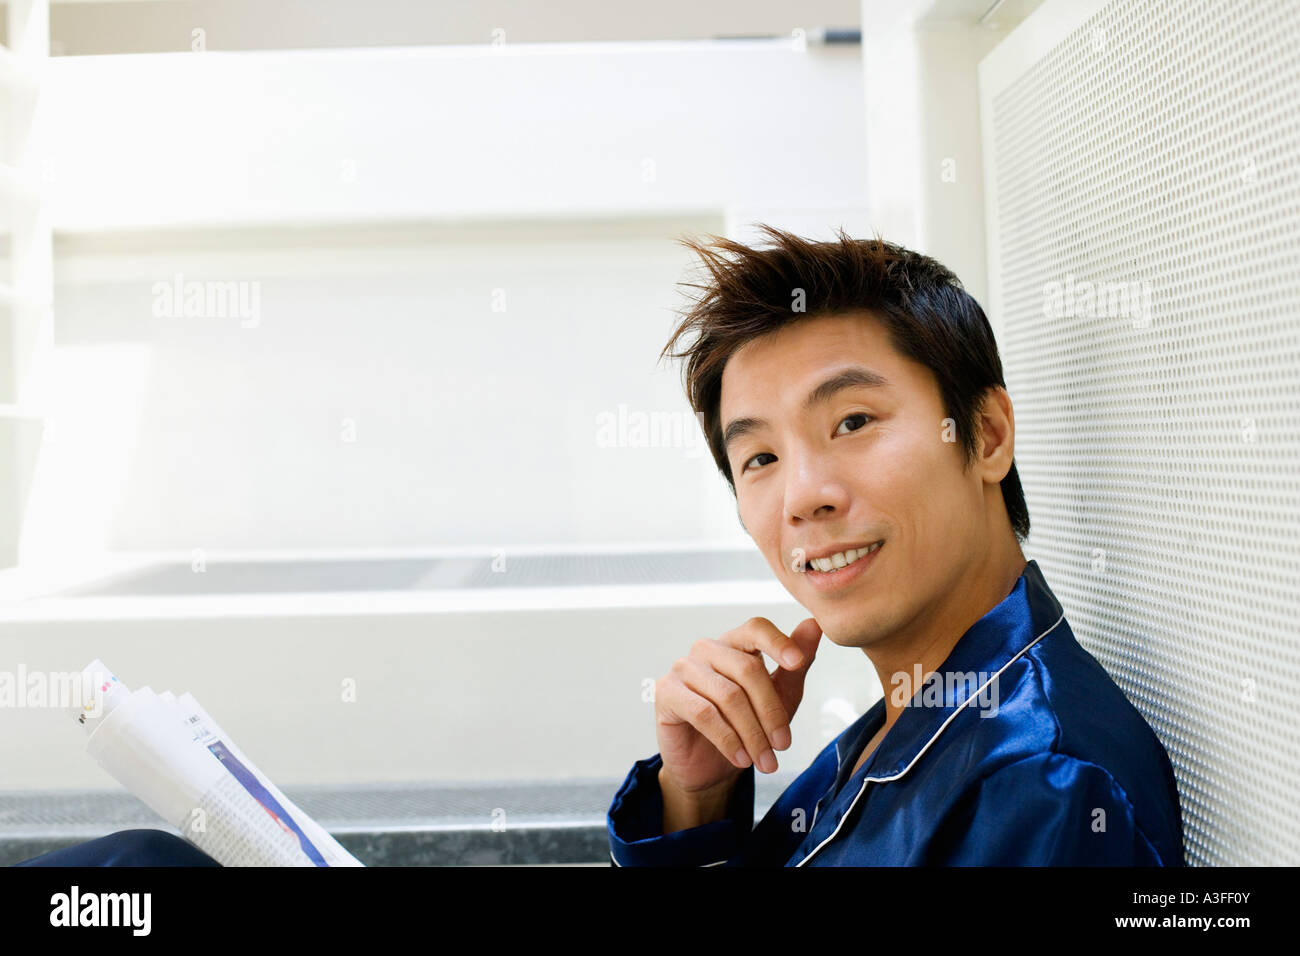 Portrait of a mid adult man holding a newspaper - Stock Image